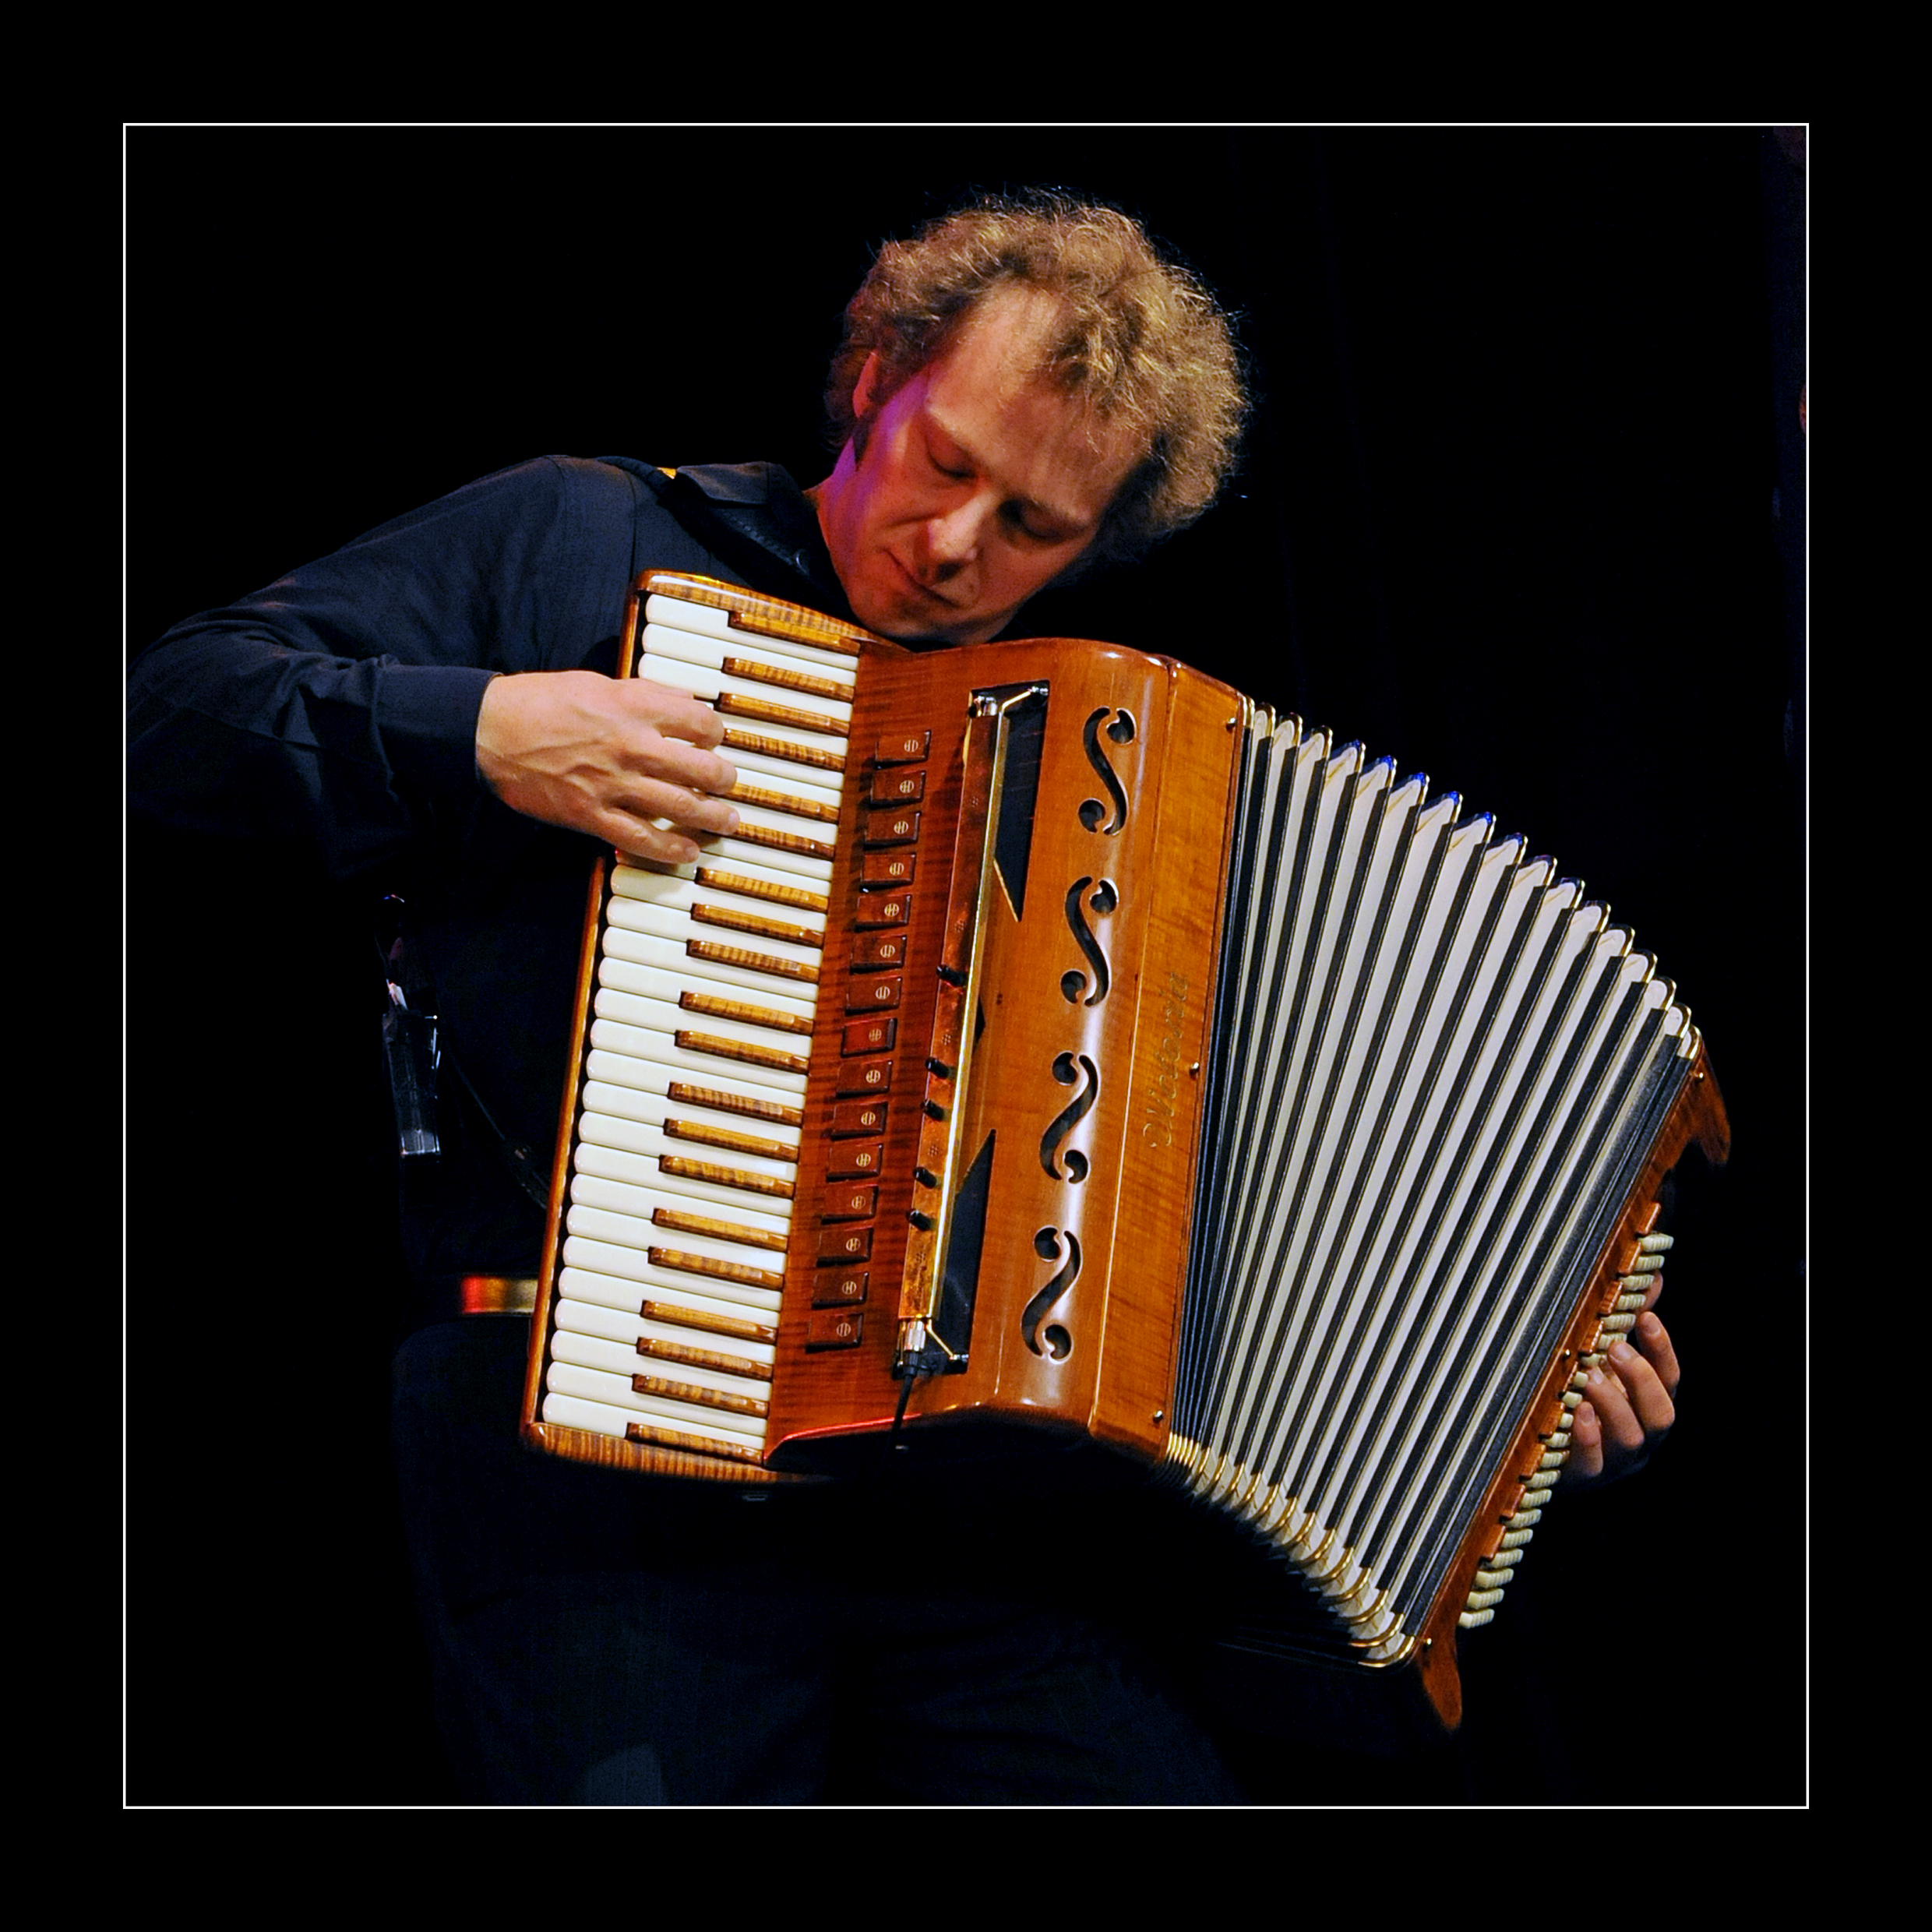 Andreas Hinterseher, accordion. Photography by Yakup Zeyrek